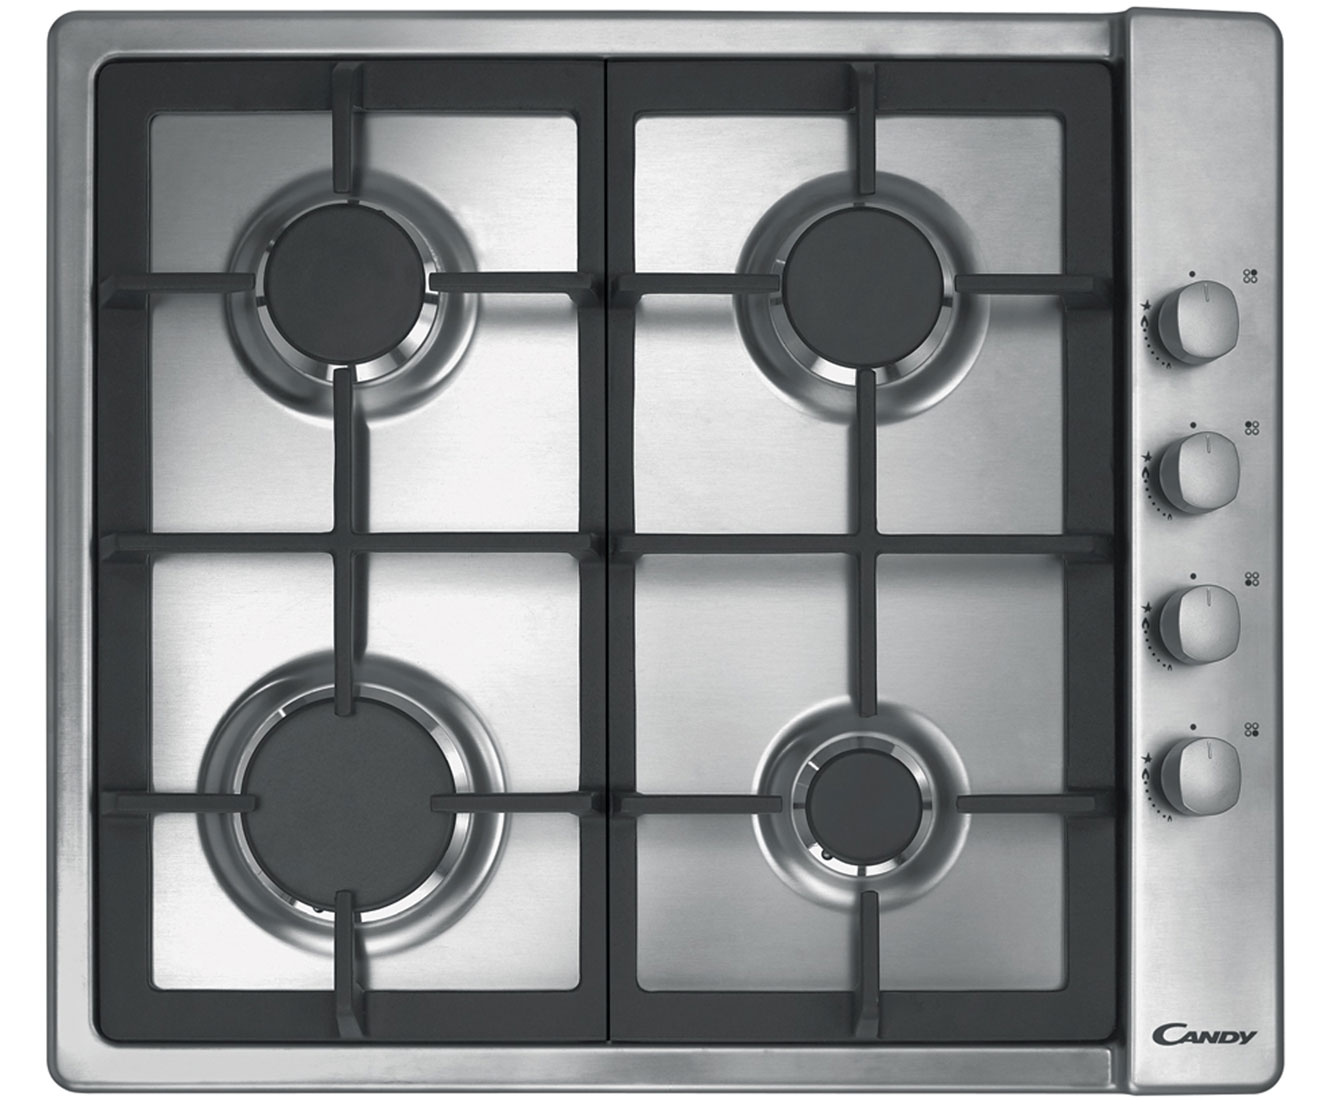 Candy Plan CLG64SGX Integrated Gas Hob in Stainless Steel